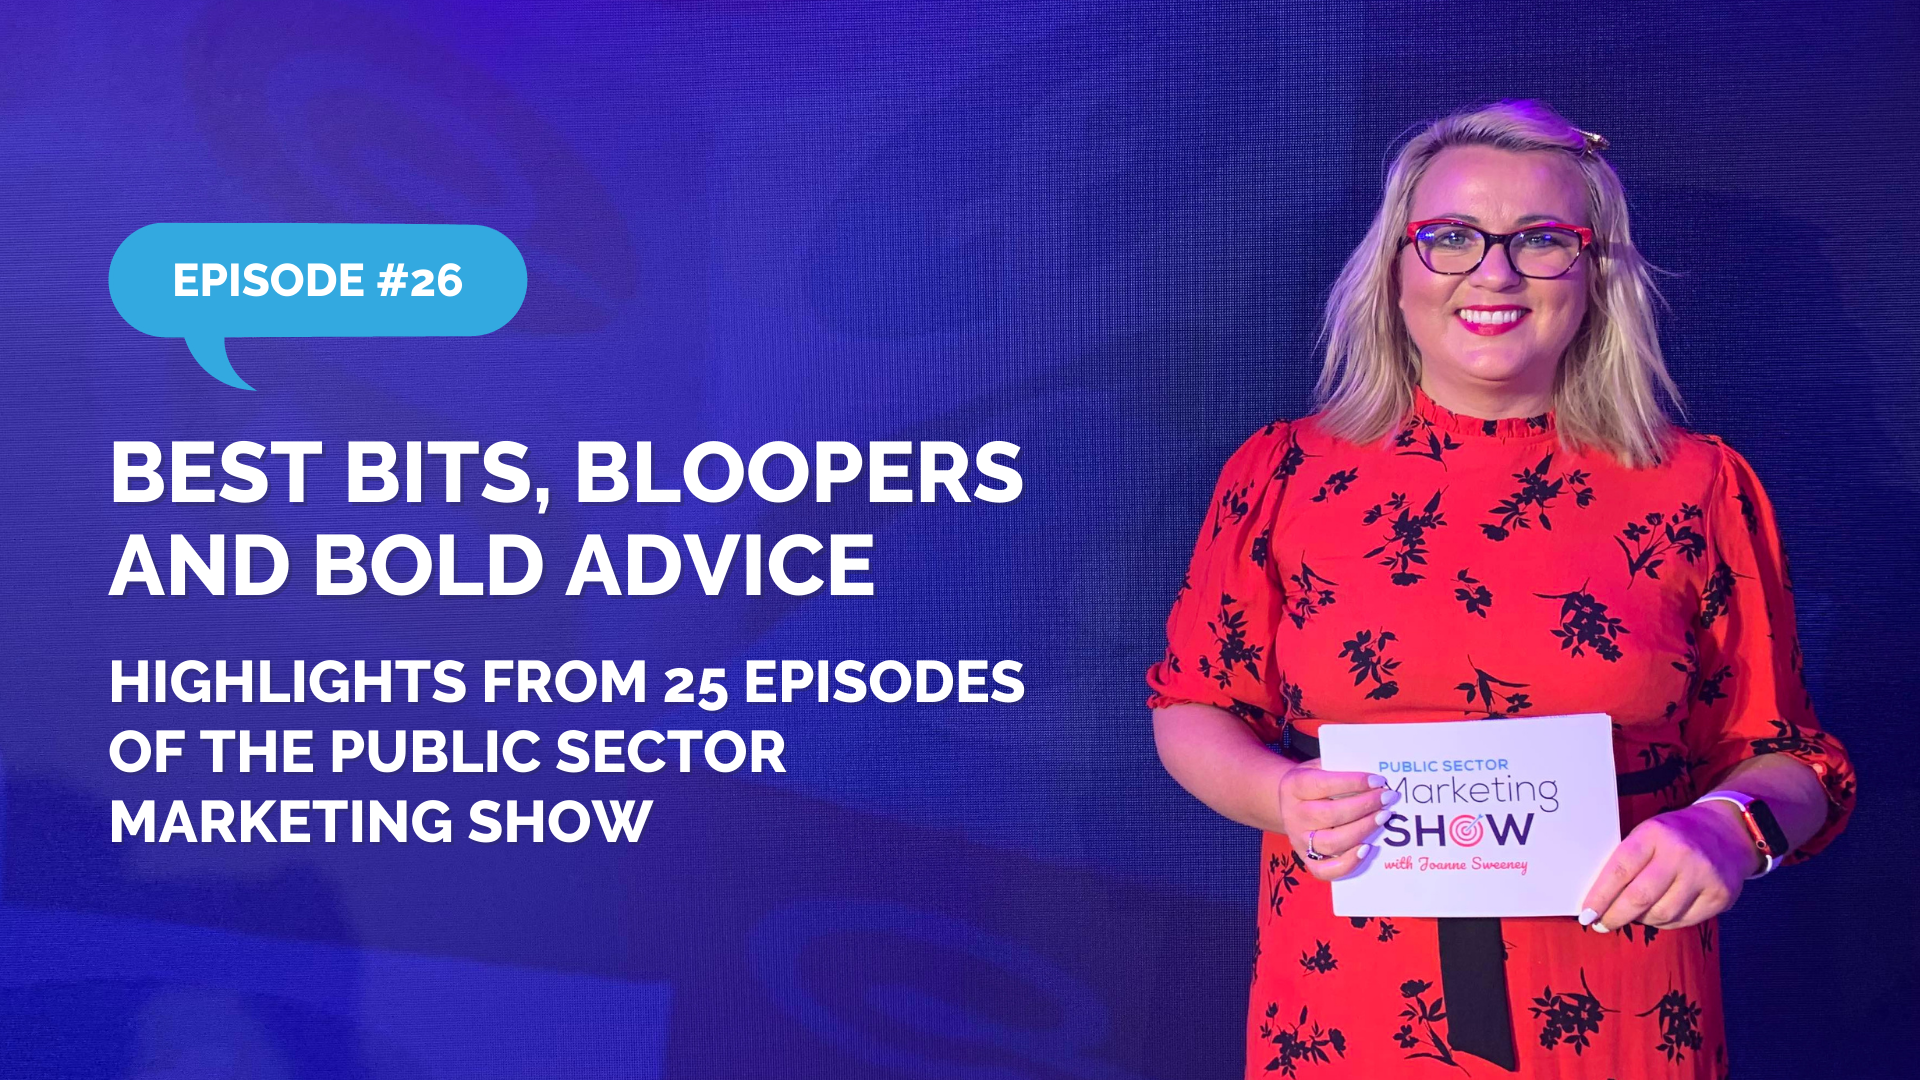 Episode 26 - Best Bits, Bloopers and Bold Advice | Highlights from 25 Episodes of the Public Sector Marketing Show